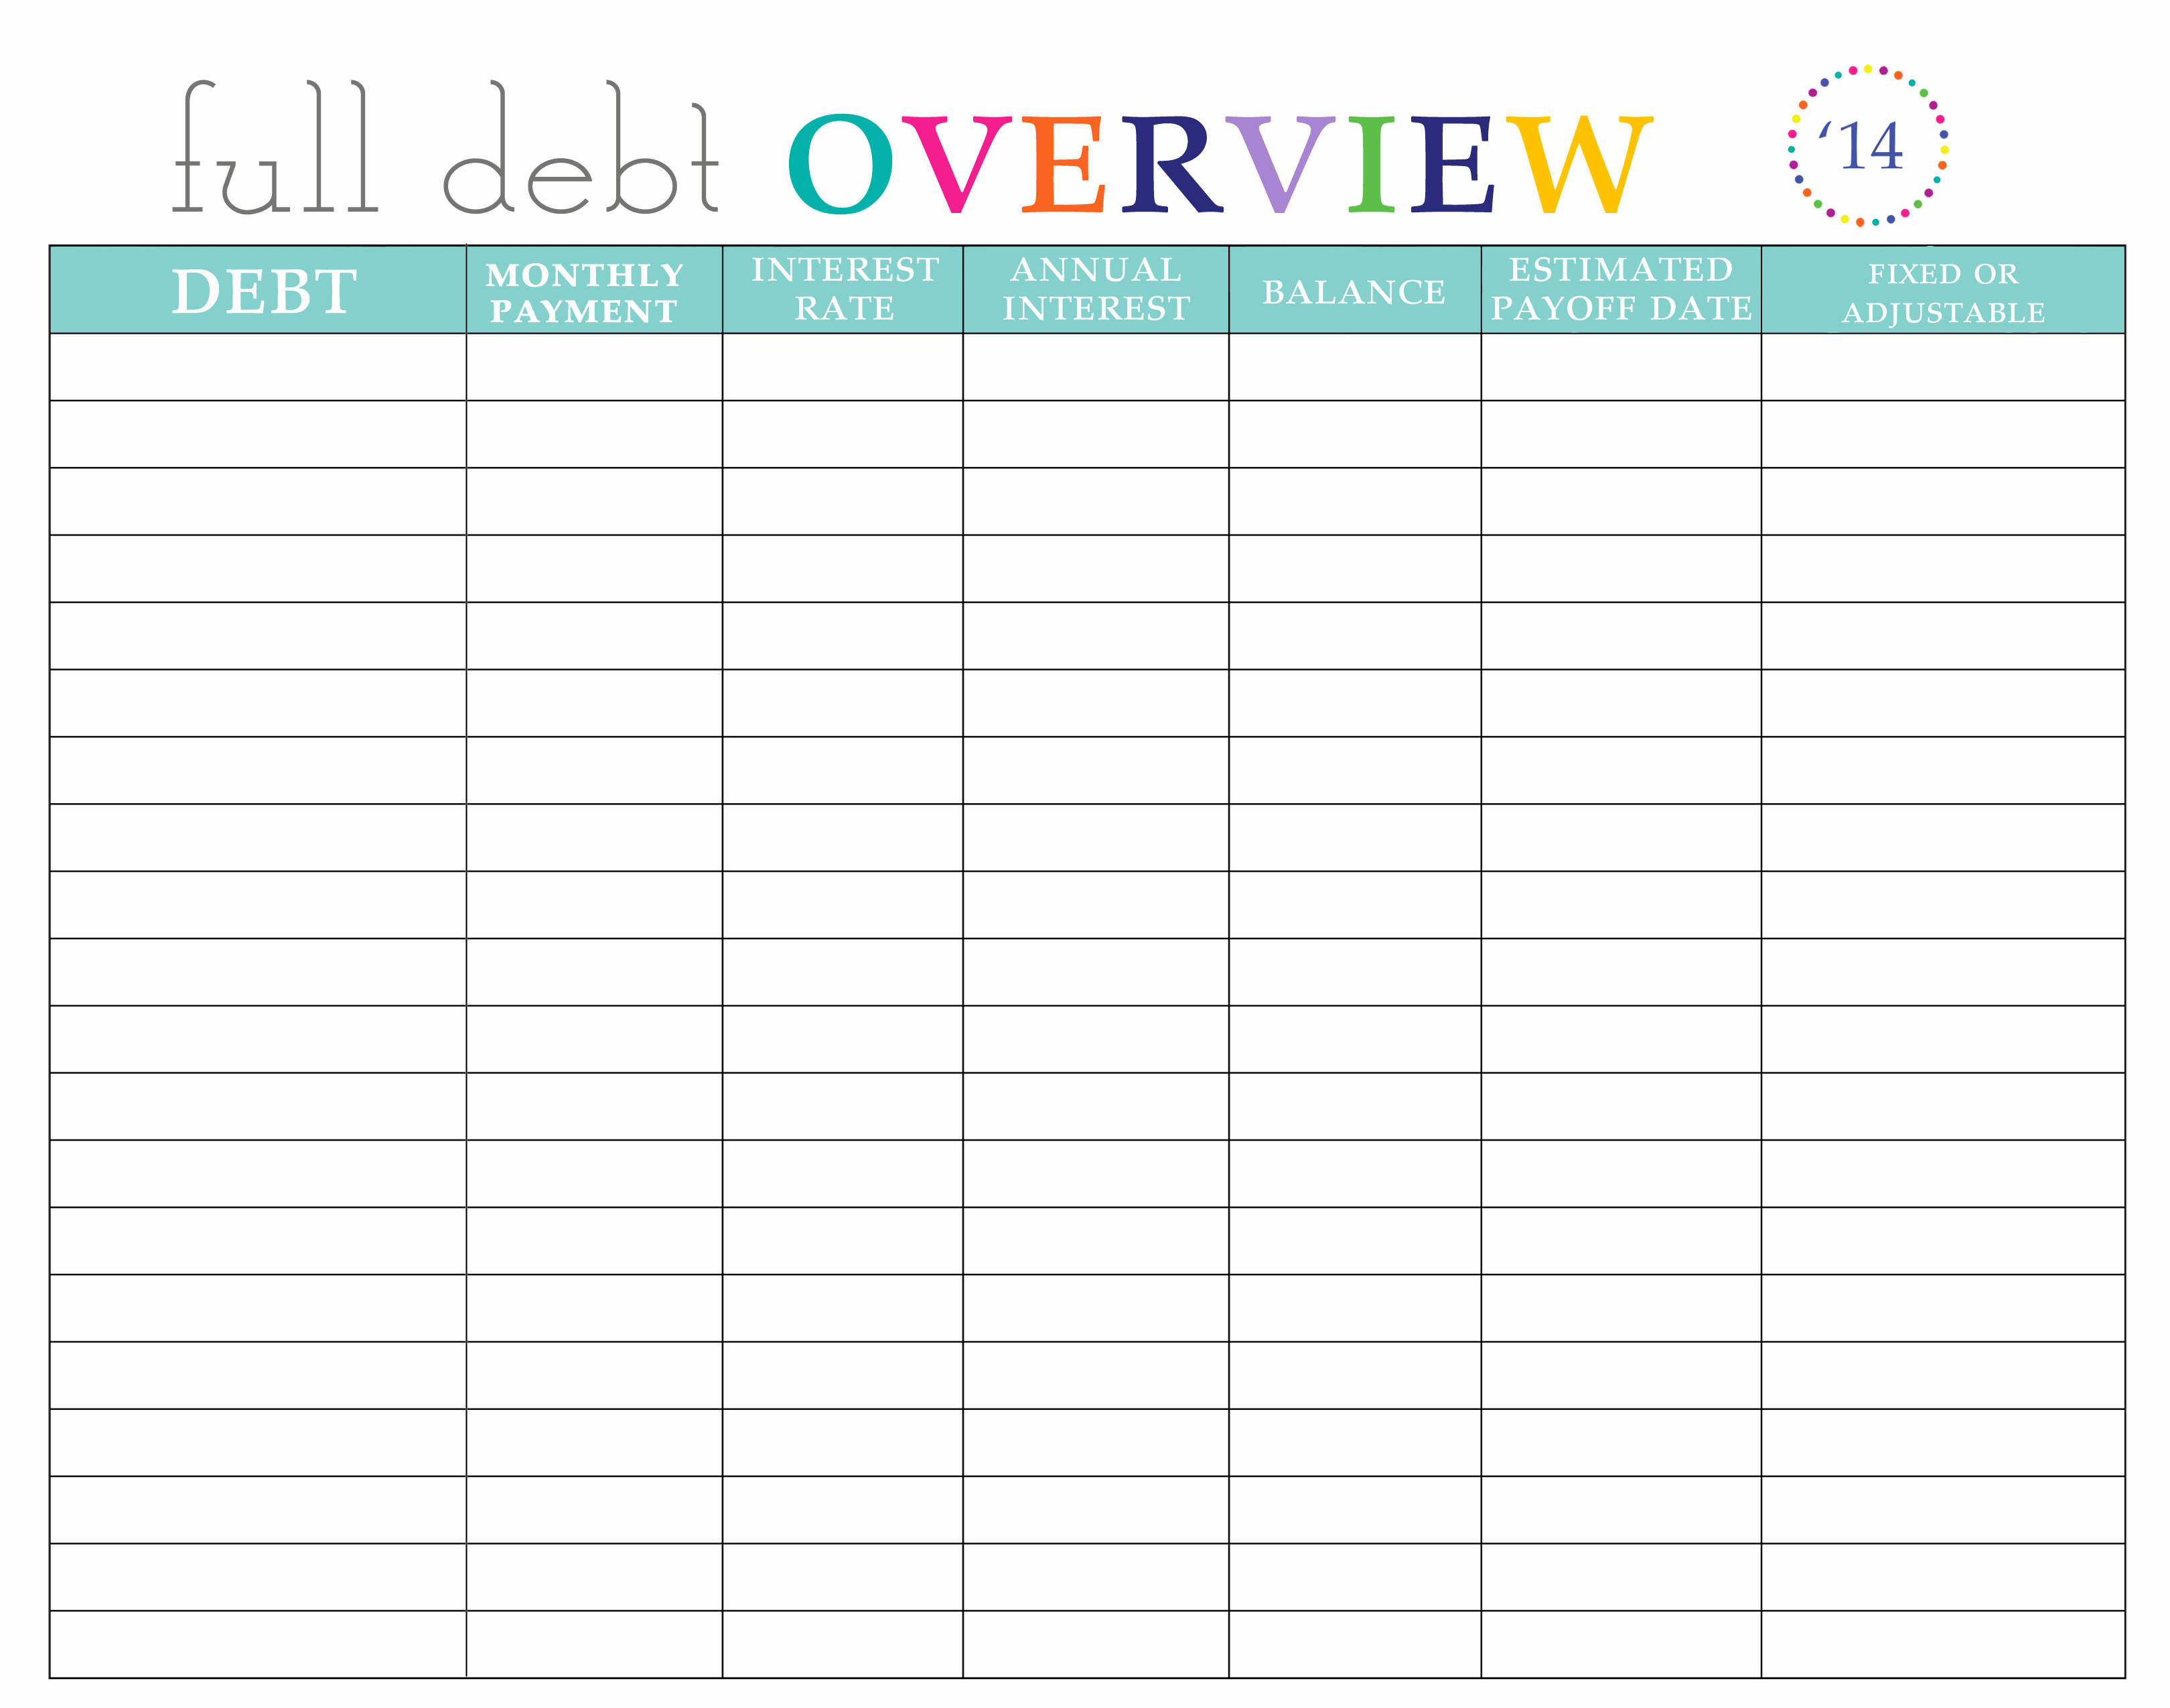 Simple Accounting Spreadsheet Best Of Simple Accounting Spreadsheet And Free Simple Accounting Spreadsheet Small Business